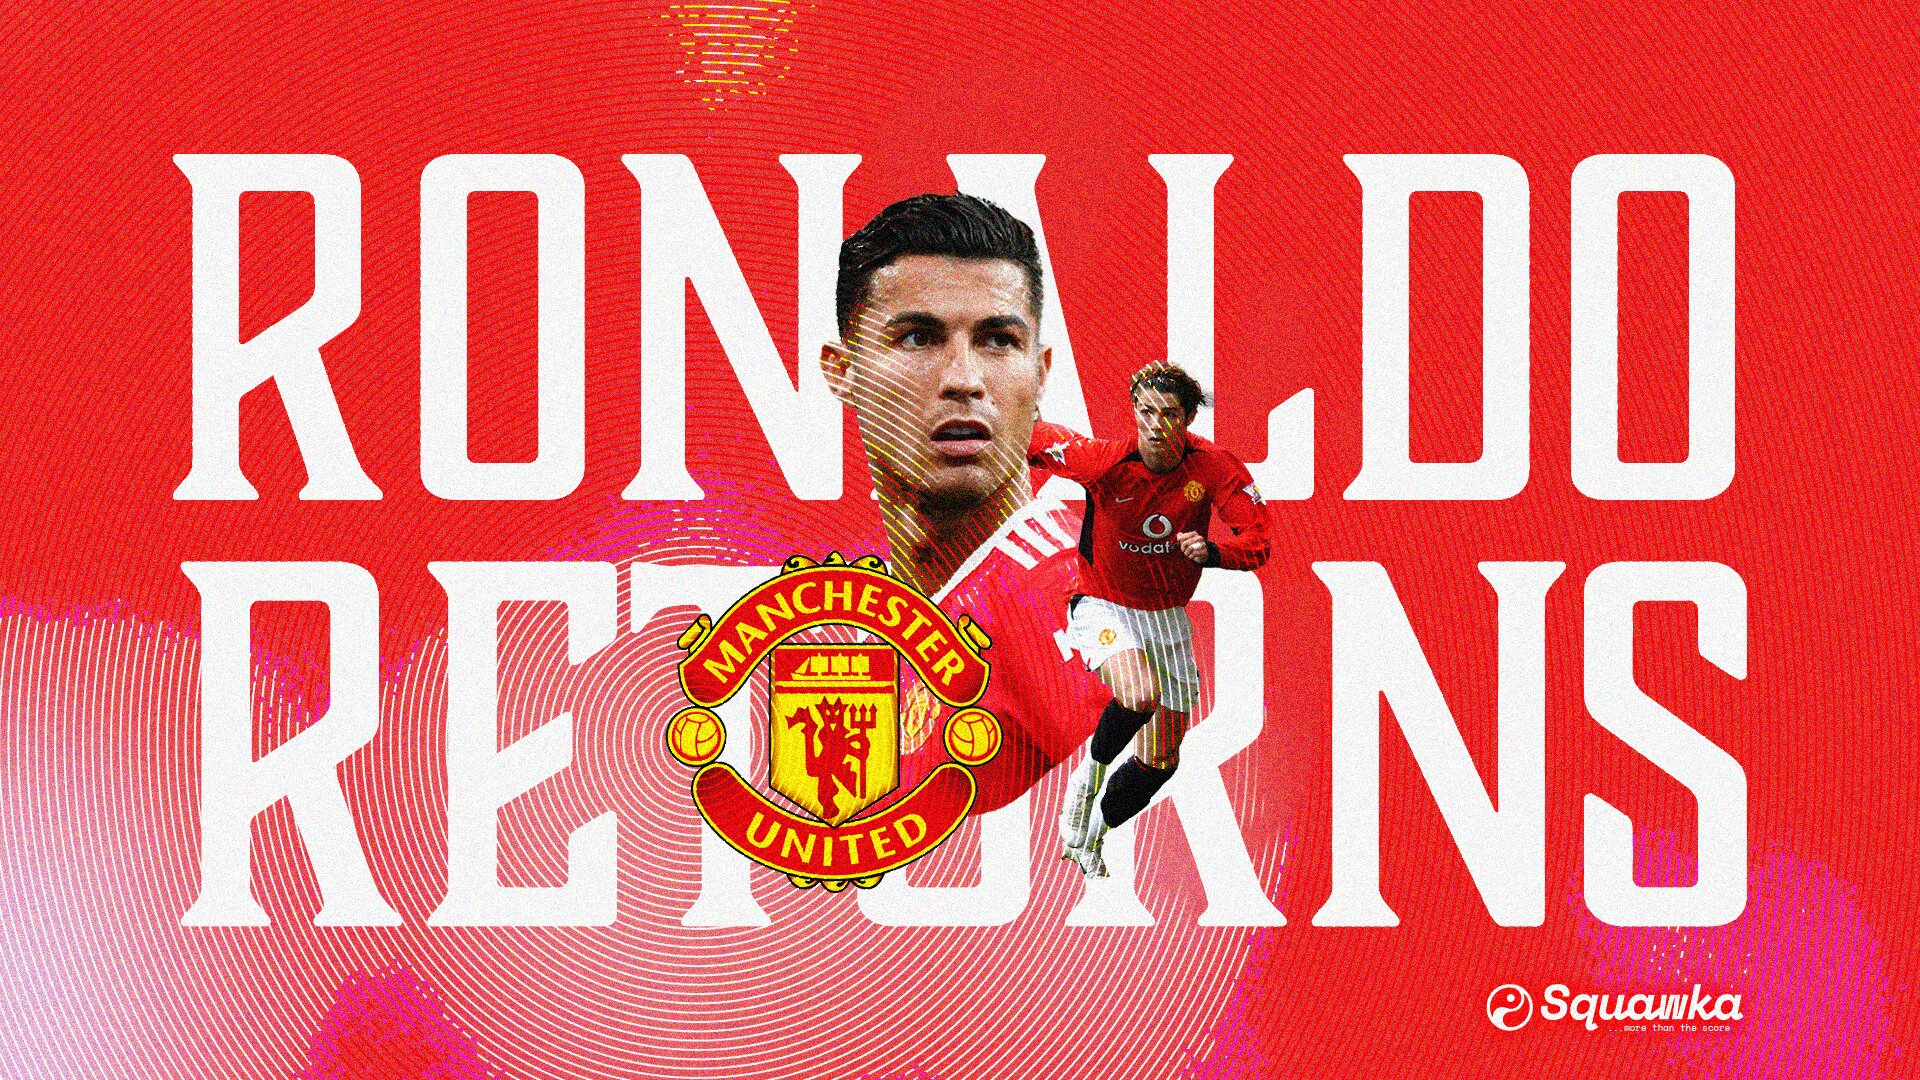 Man Utd beat City to re sign Cristiano Ronaldo after late 1920x1080